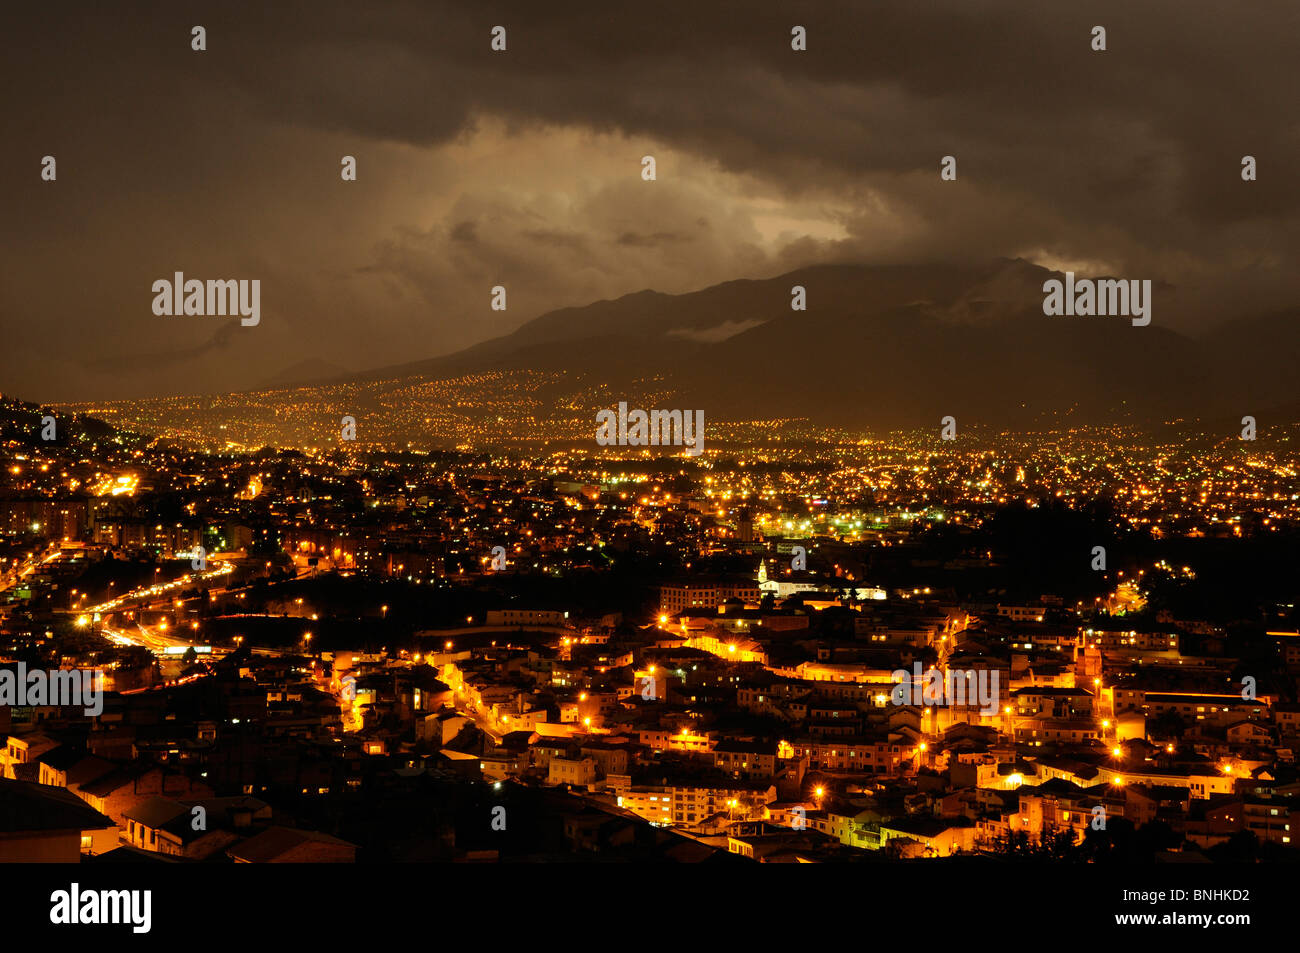 Ecuador Lightning Storm Old Town Quito City Overlook Lights Stormy Clouds Night Landscape Atmospheric Scenery Scenic